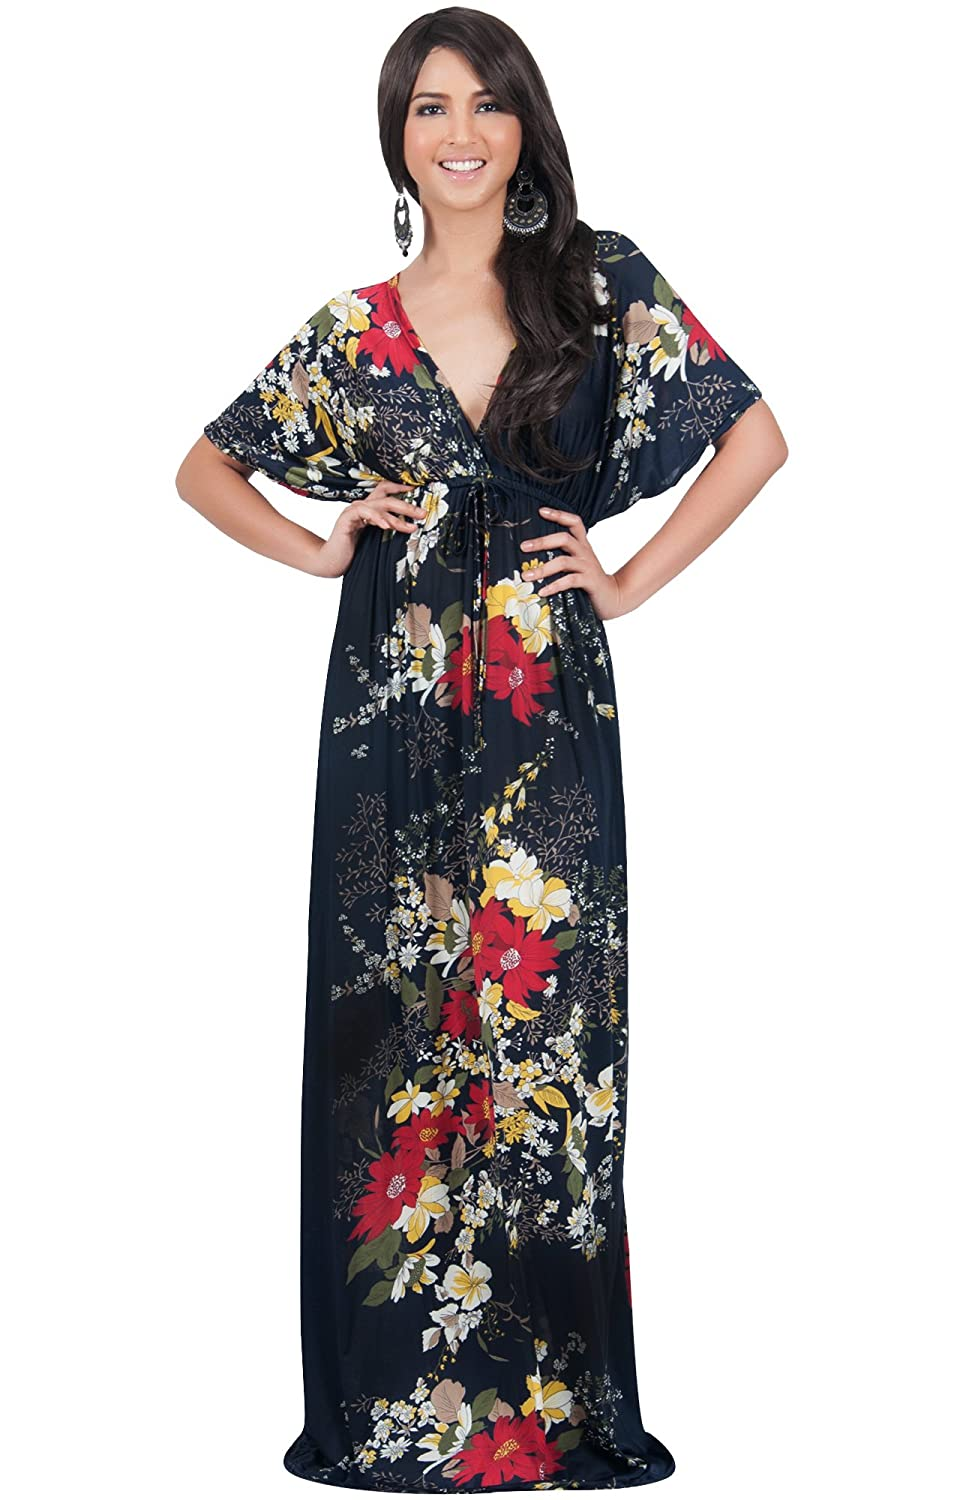 koh koh damen kimono v neck blumen print maxi kleid mit rmeln g nstig bestellen. Black Bedroom Furniture Sets. Home Design Ideas